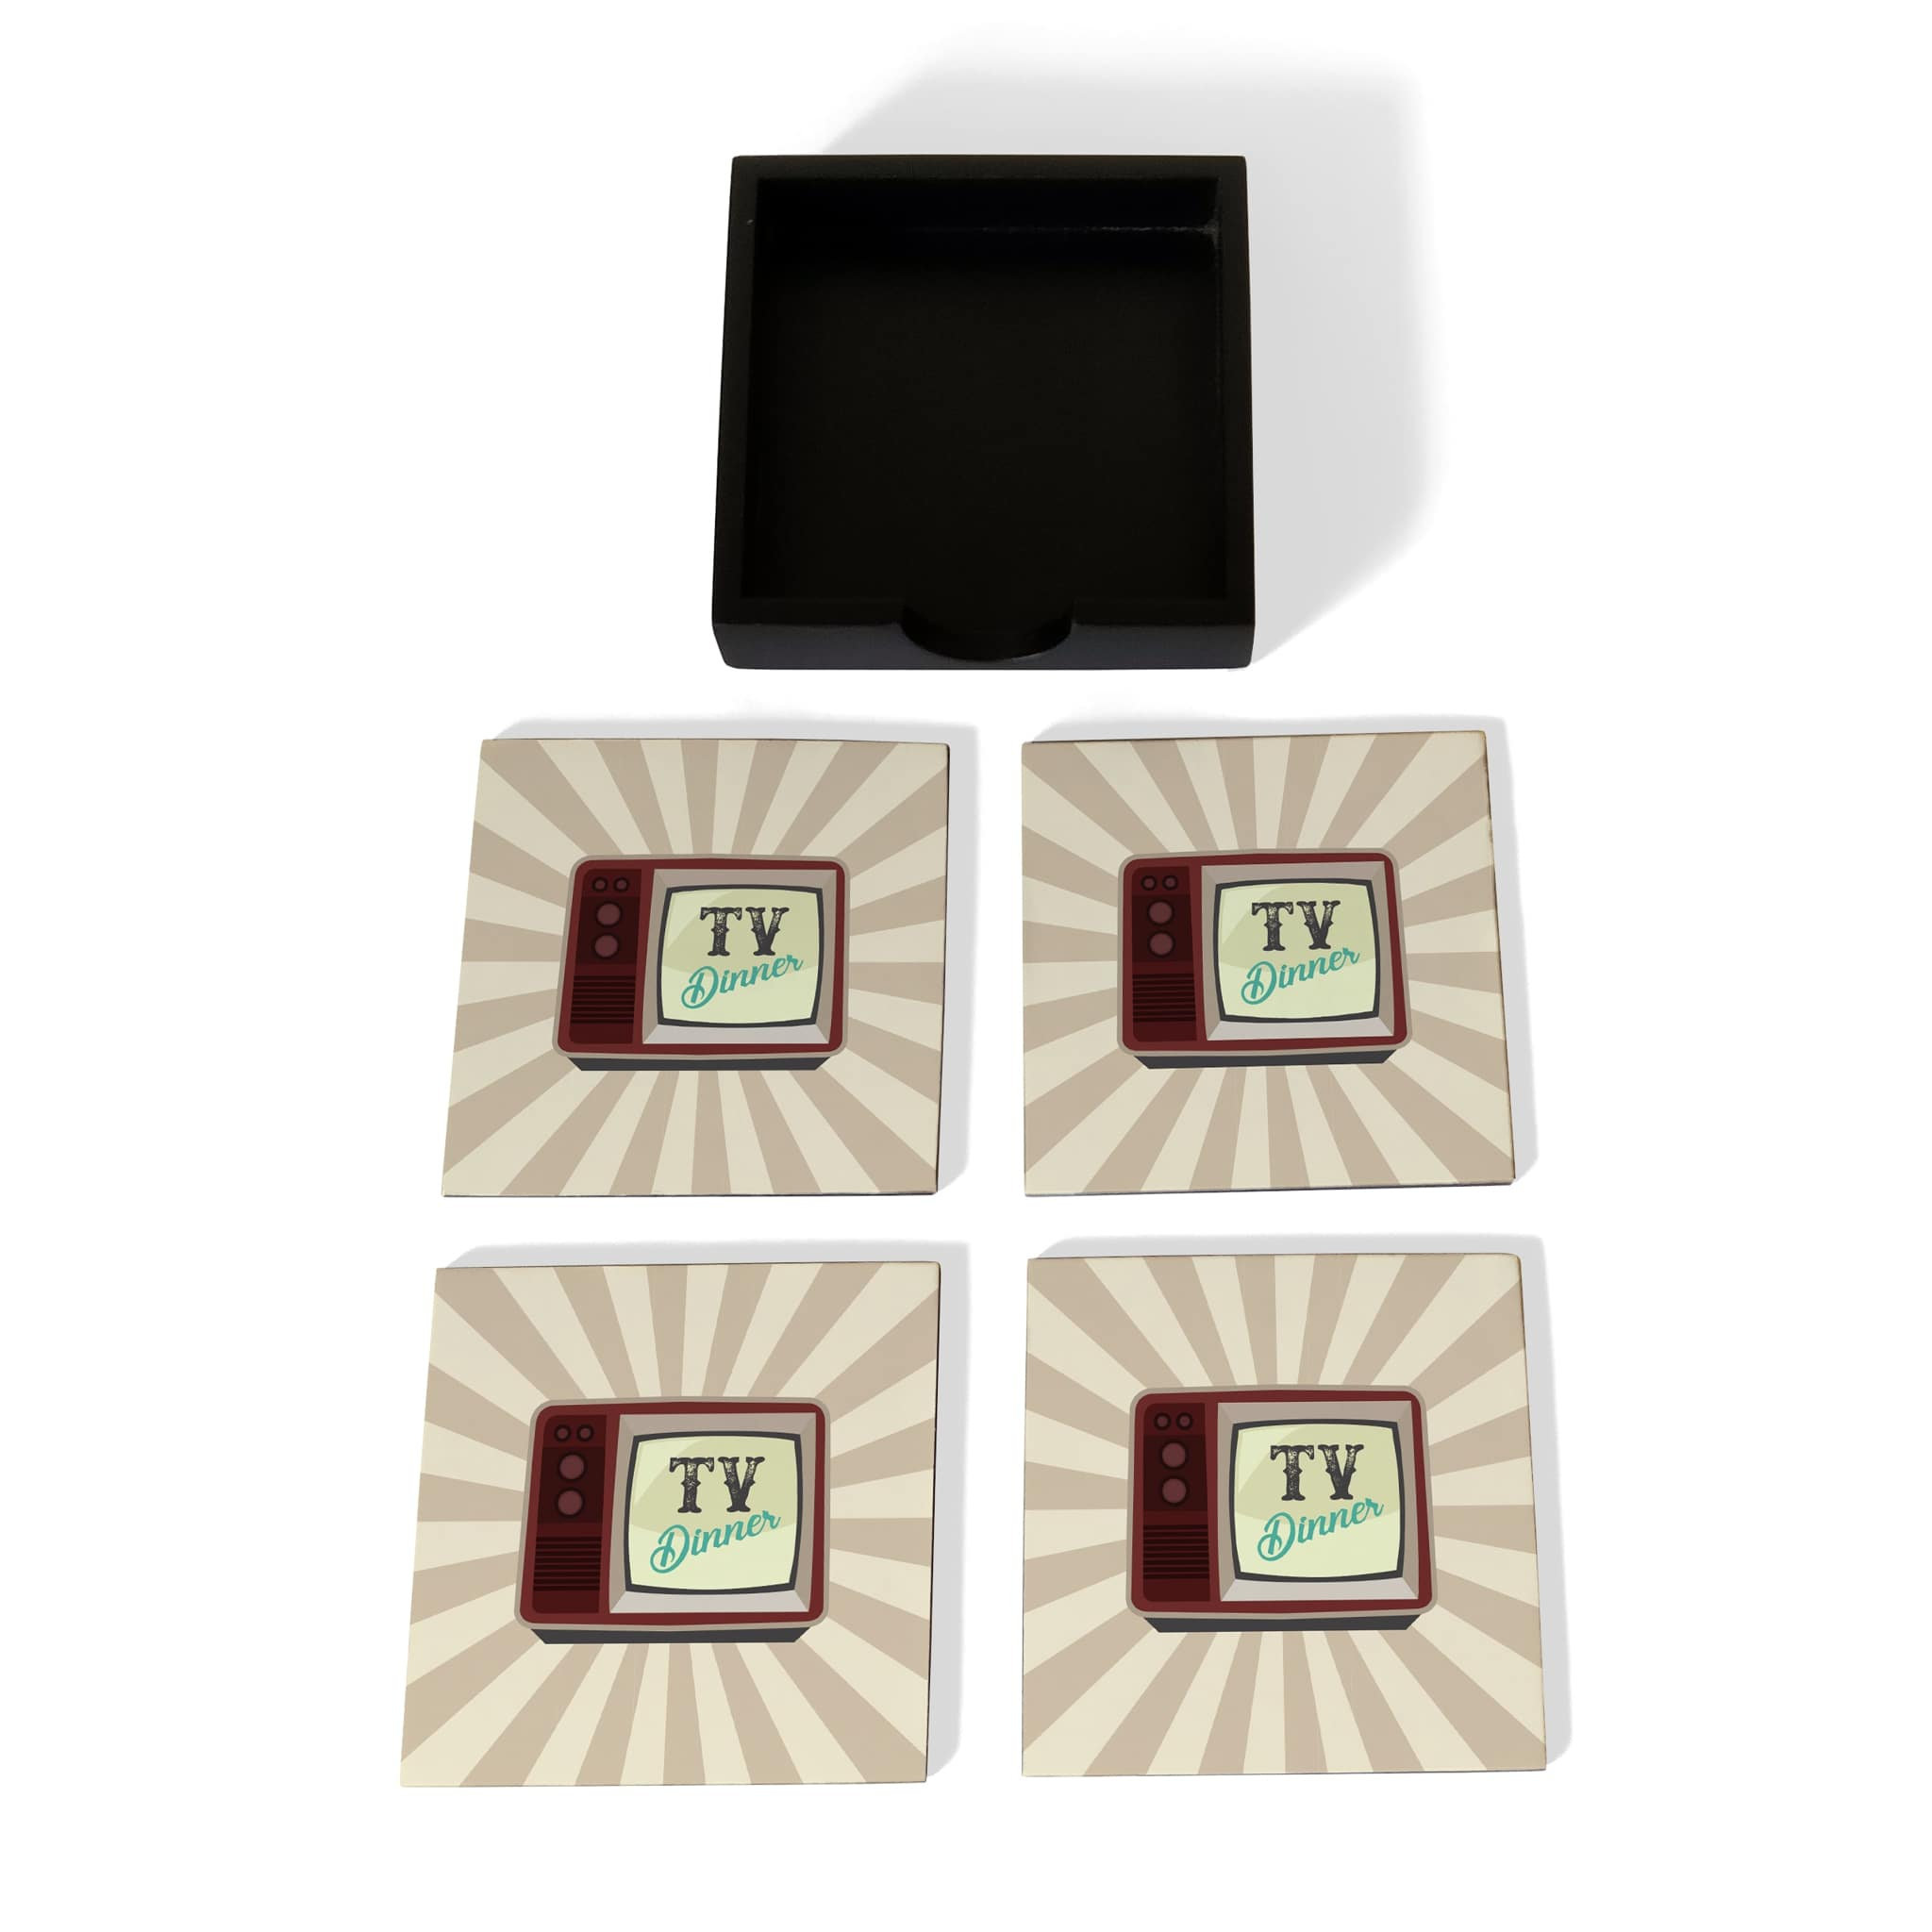 TV Dinner Coaster Set with Box